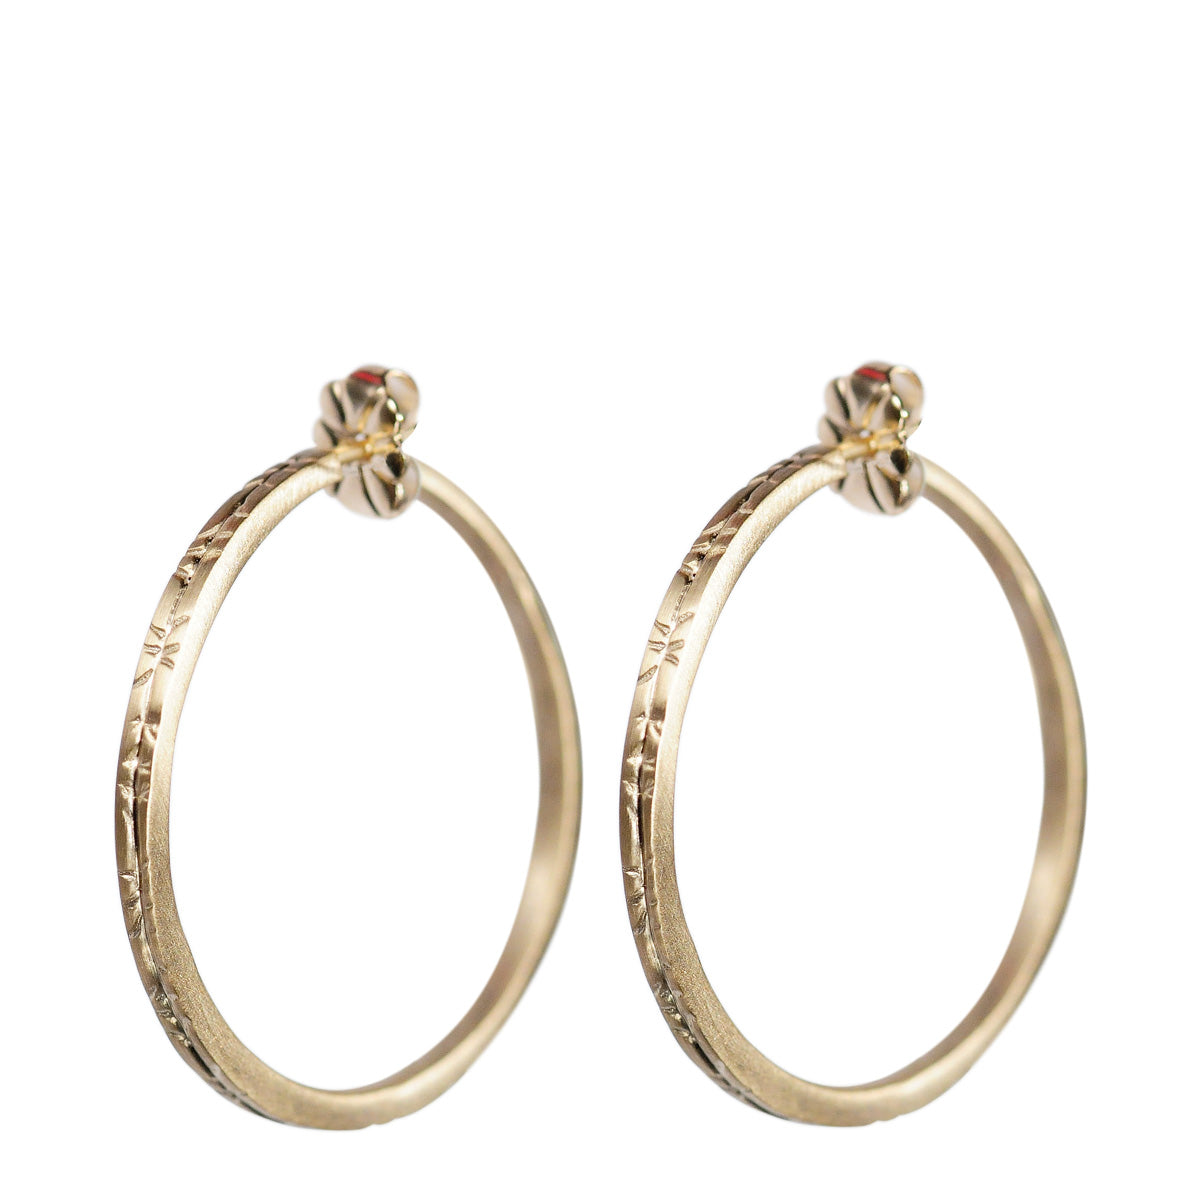 10K Gold Medium Engraved Hoop Earrings